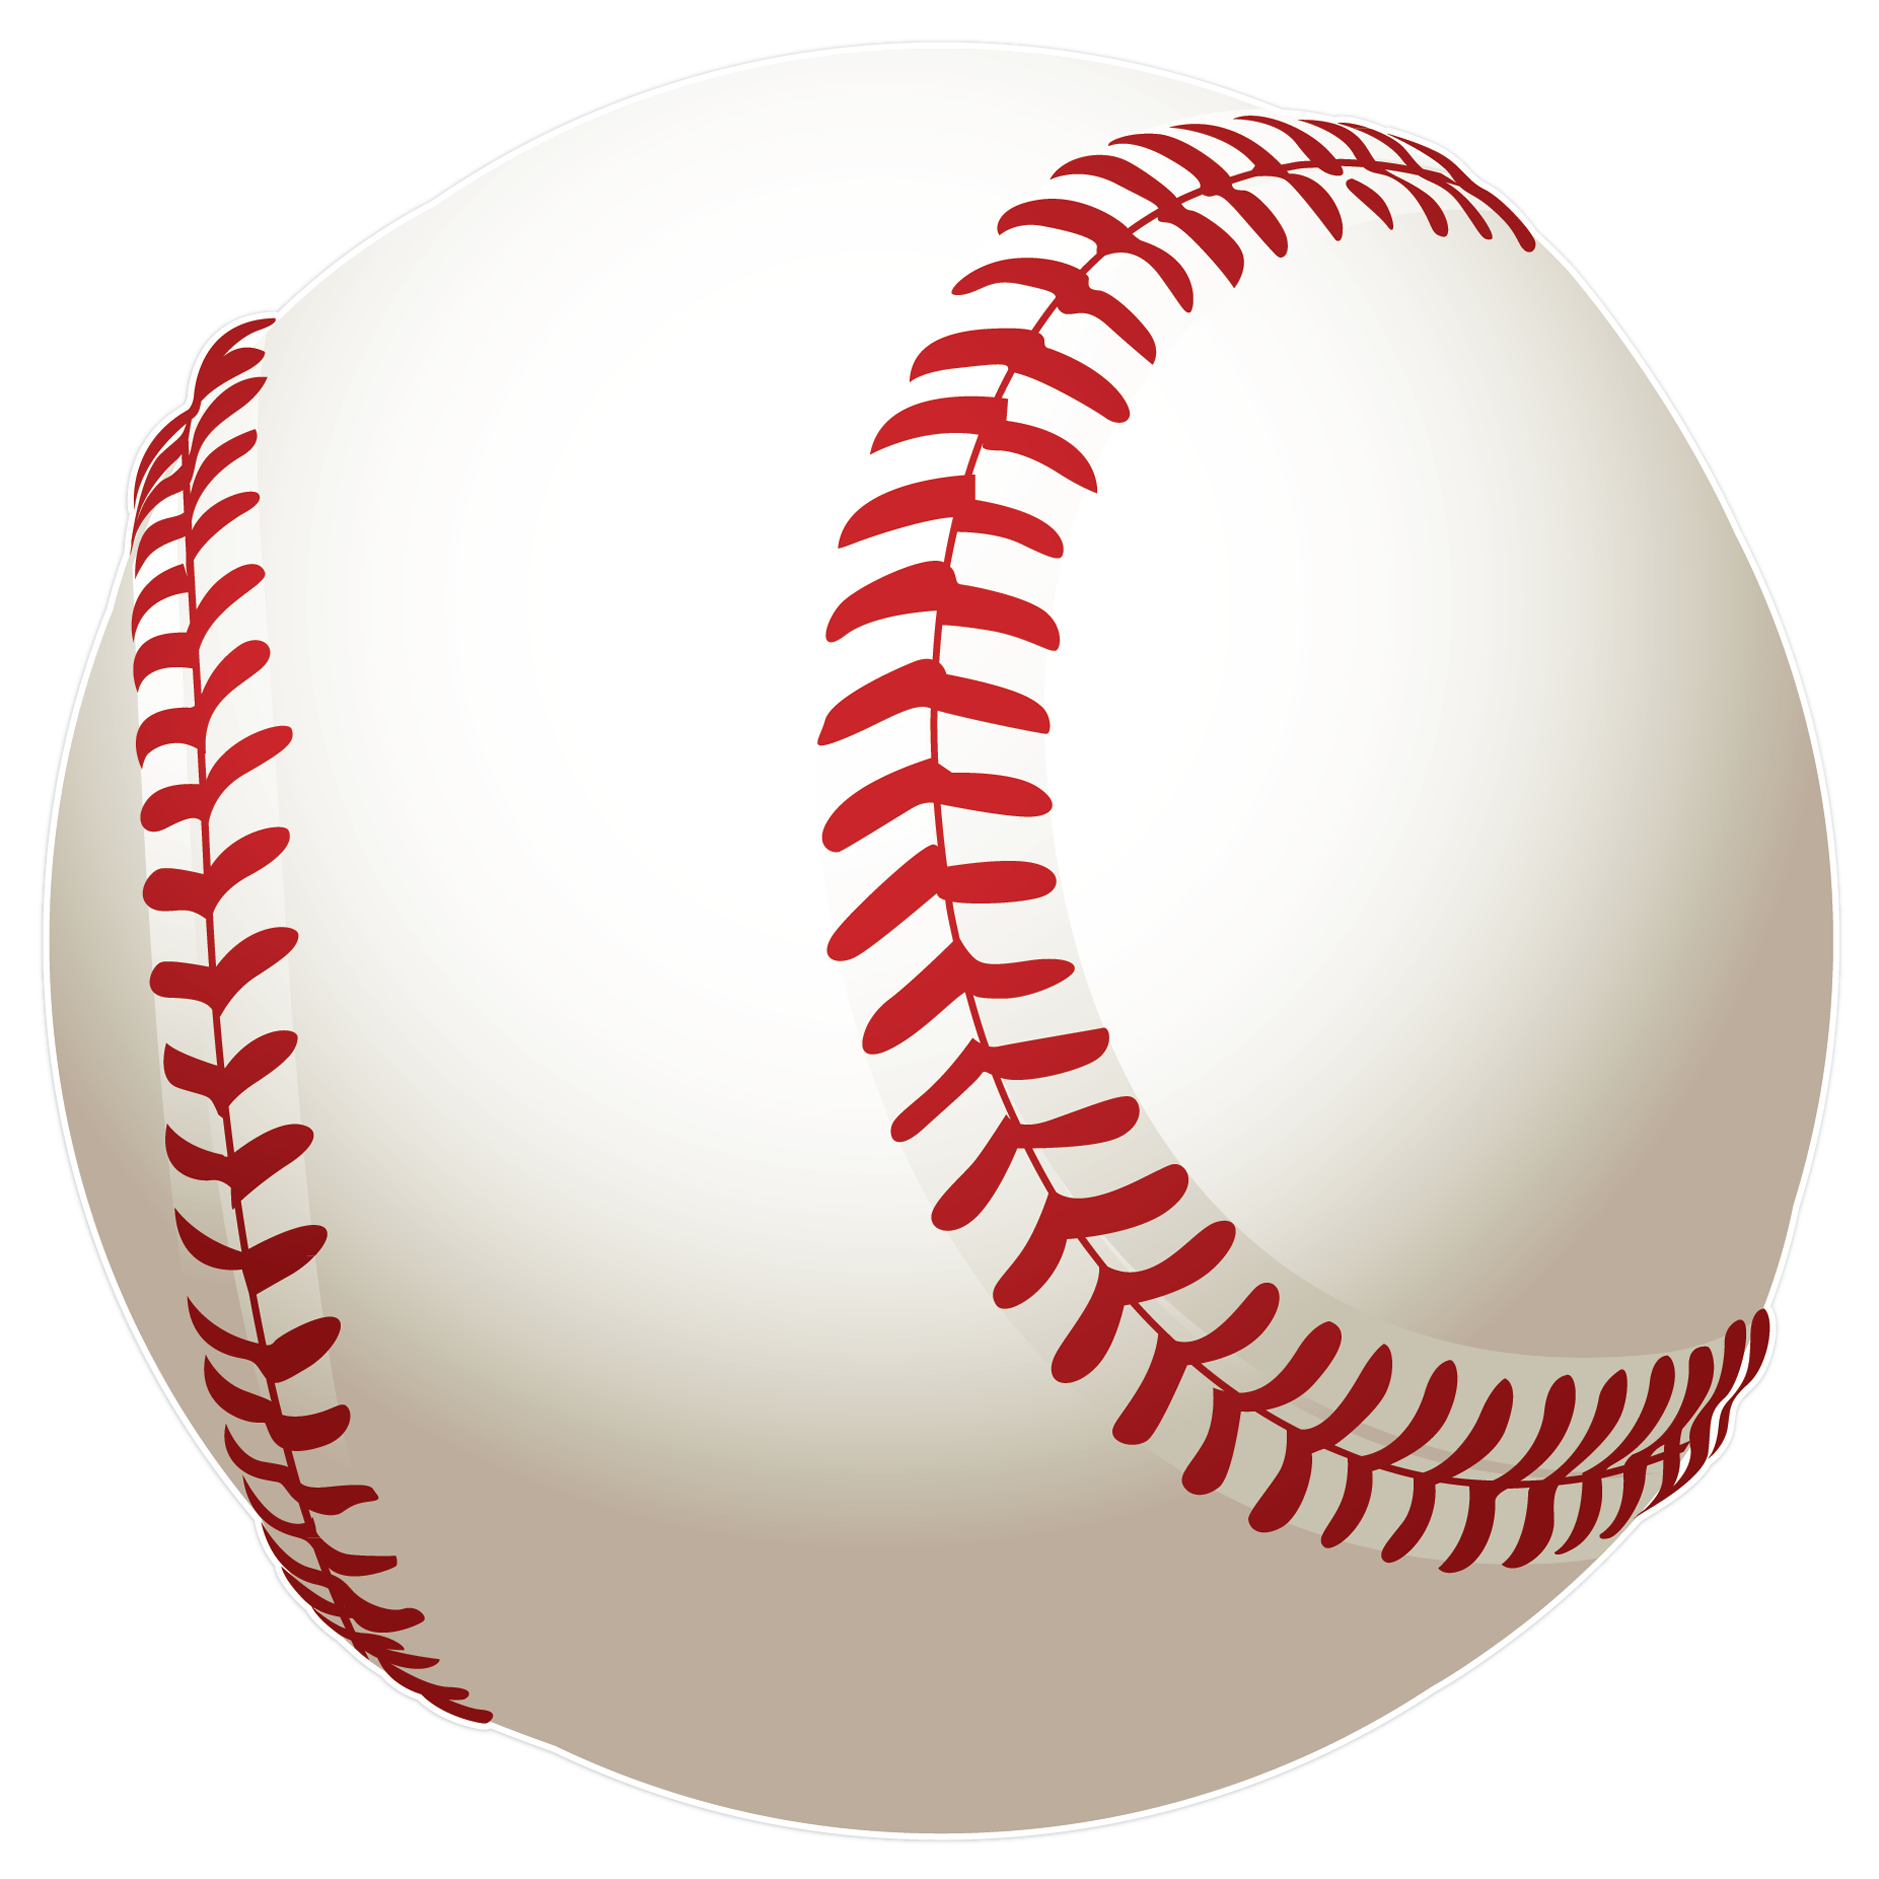 1879x1879 Baseball Clip Art Images Black And White